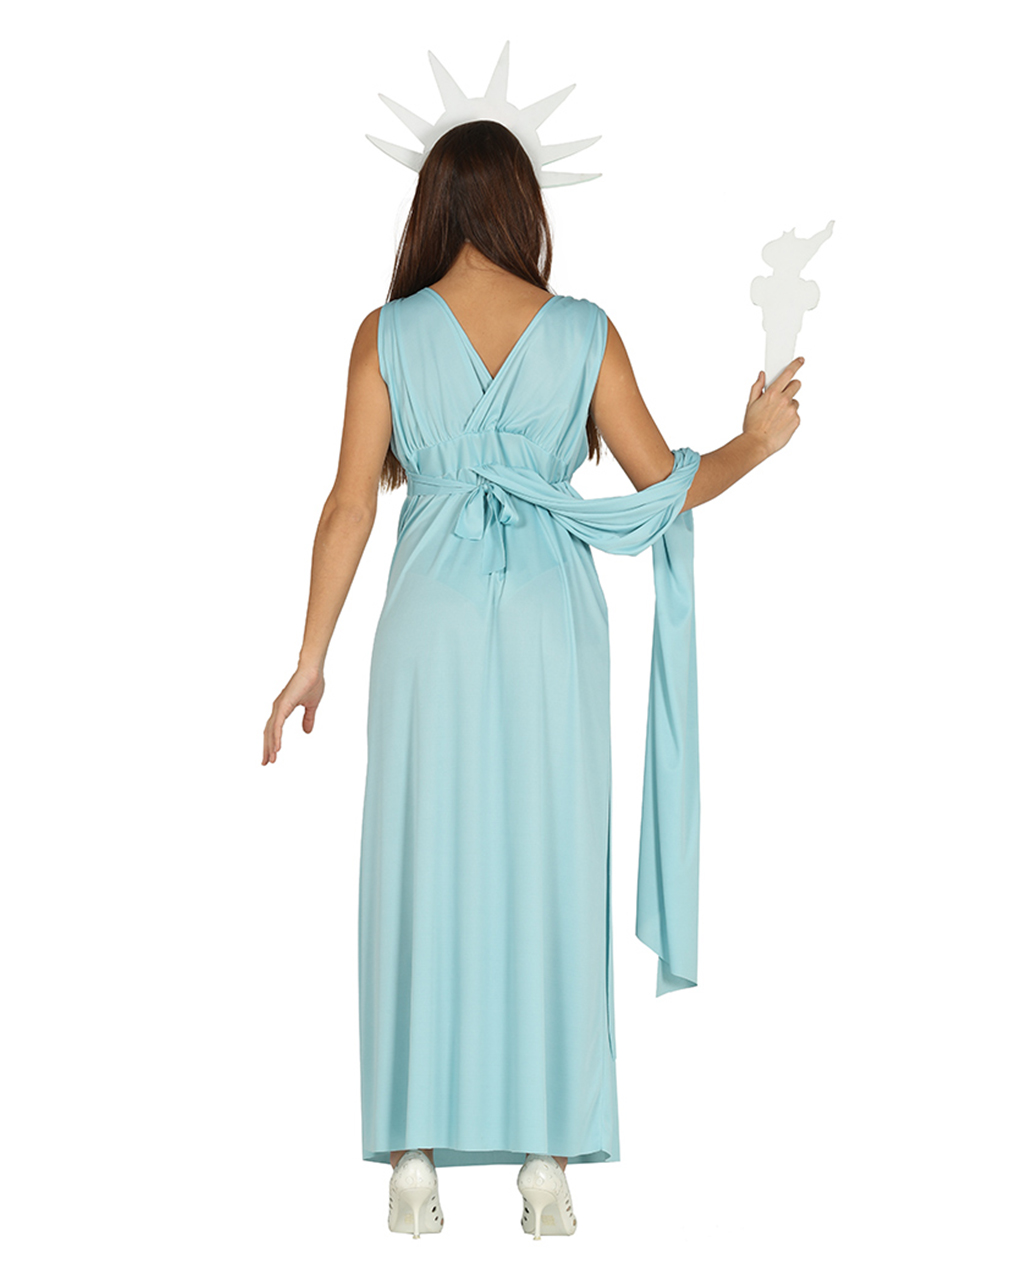 Statue Of Liberty Costume for Mottoparty   horror-shop.com